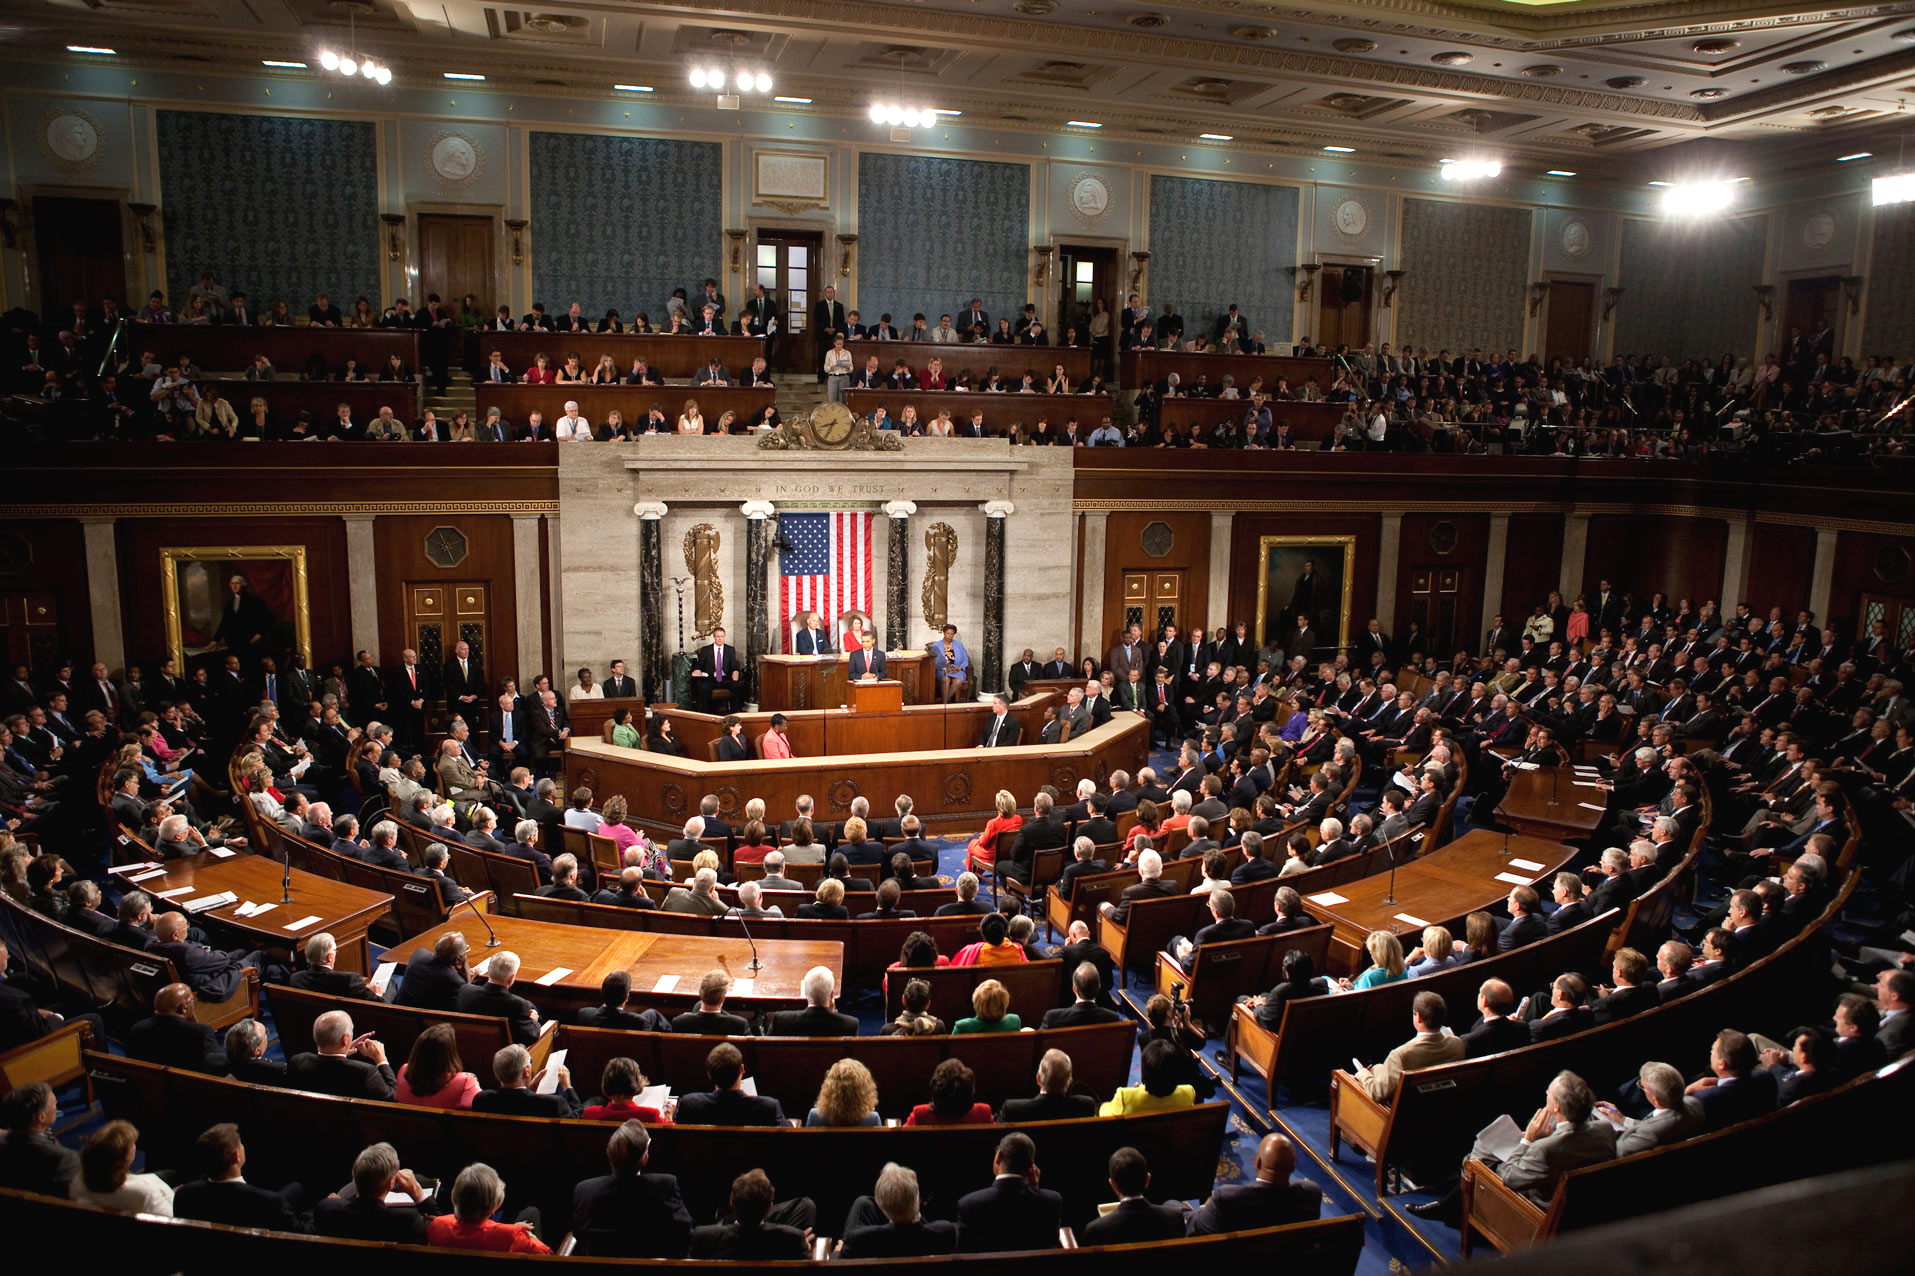 https://upload.wikimedia.org/wikipedia/commons/f/fb/Obama_Health_Care_Speech_to_Joint_Session_of_Congress.jpg